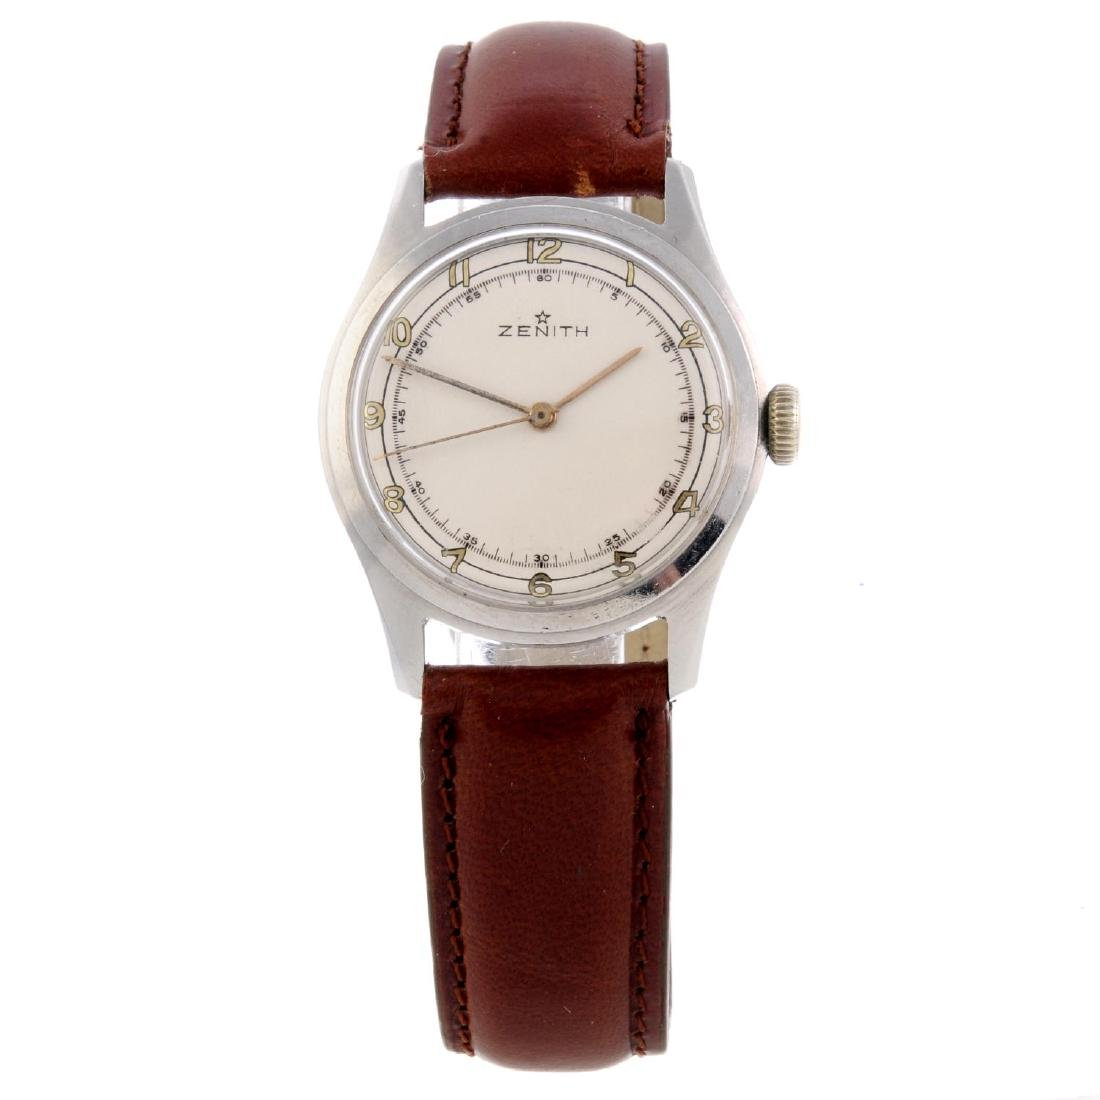 ZENITH - a gentleman's wrist watch. Stainless steel